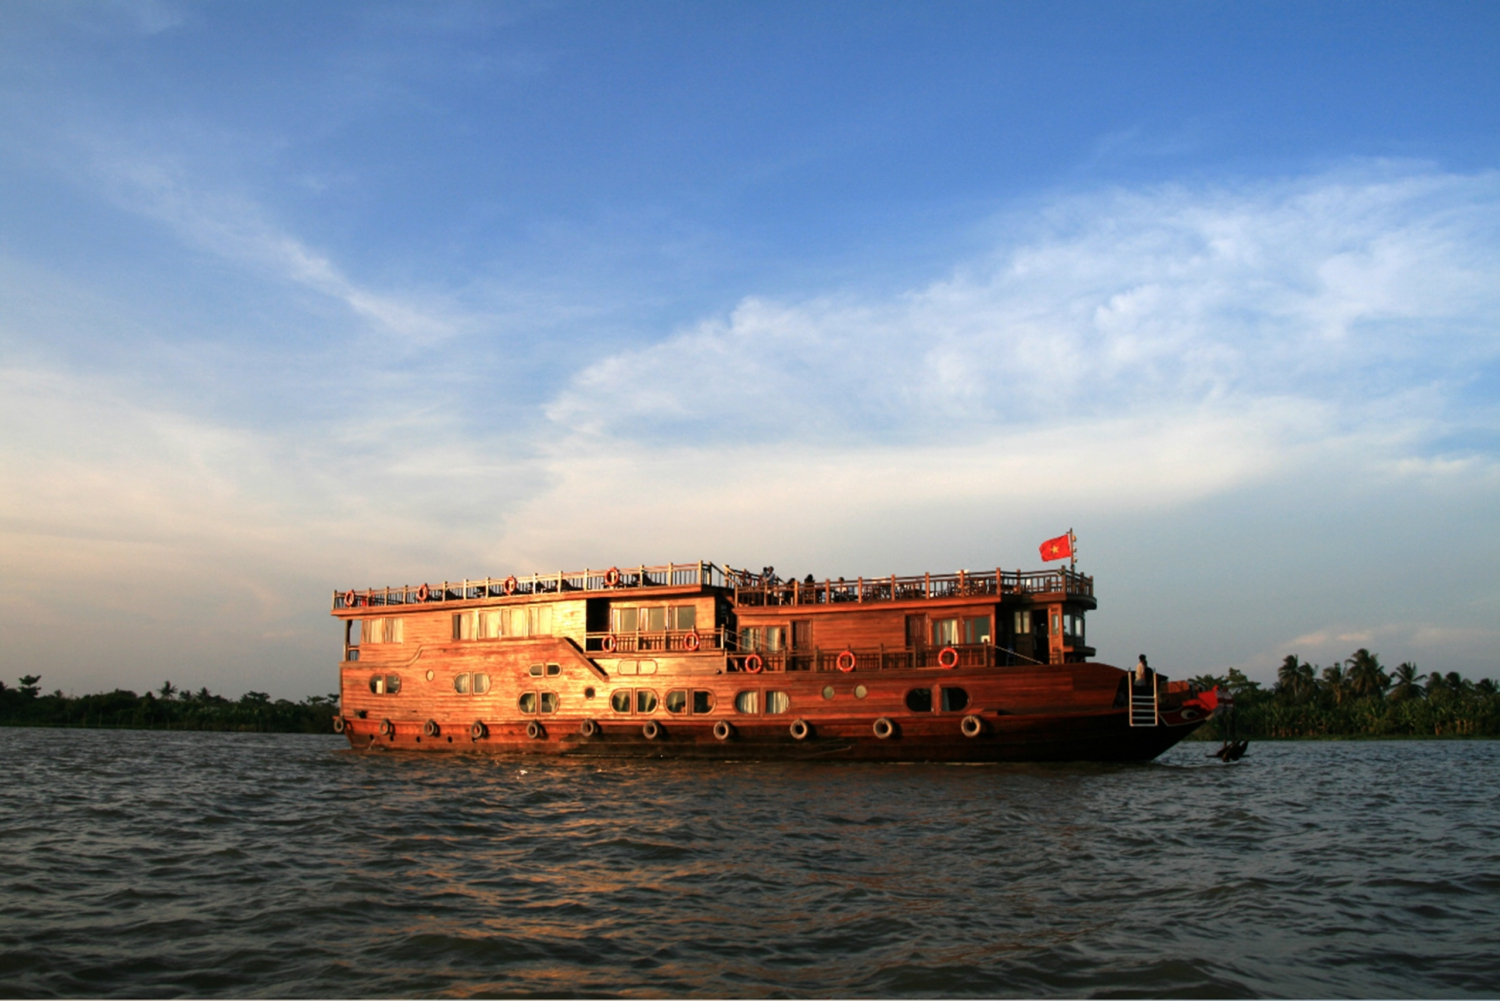 Mekong Delta 2-Day Cruise from Saigon or Phu Quoc